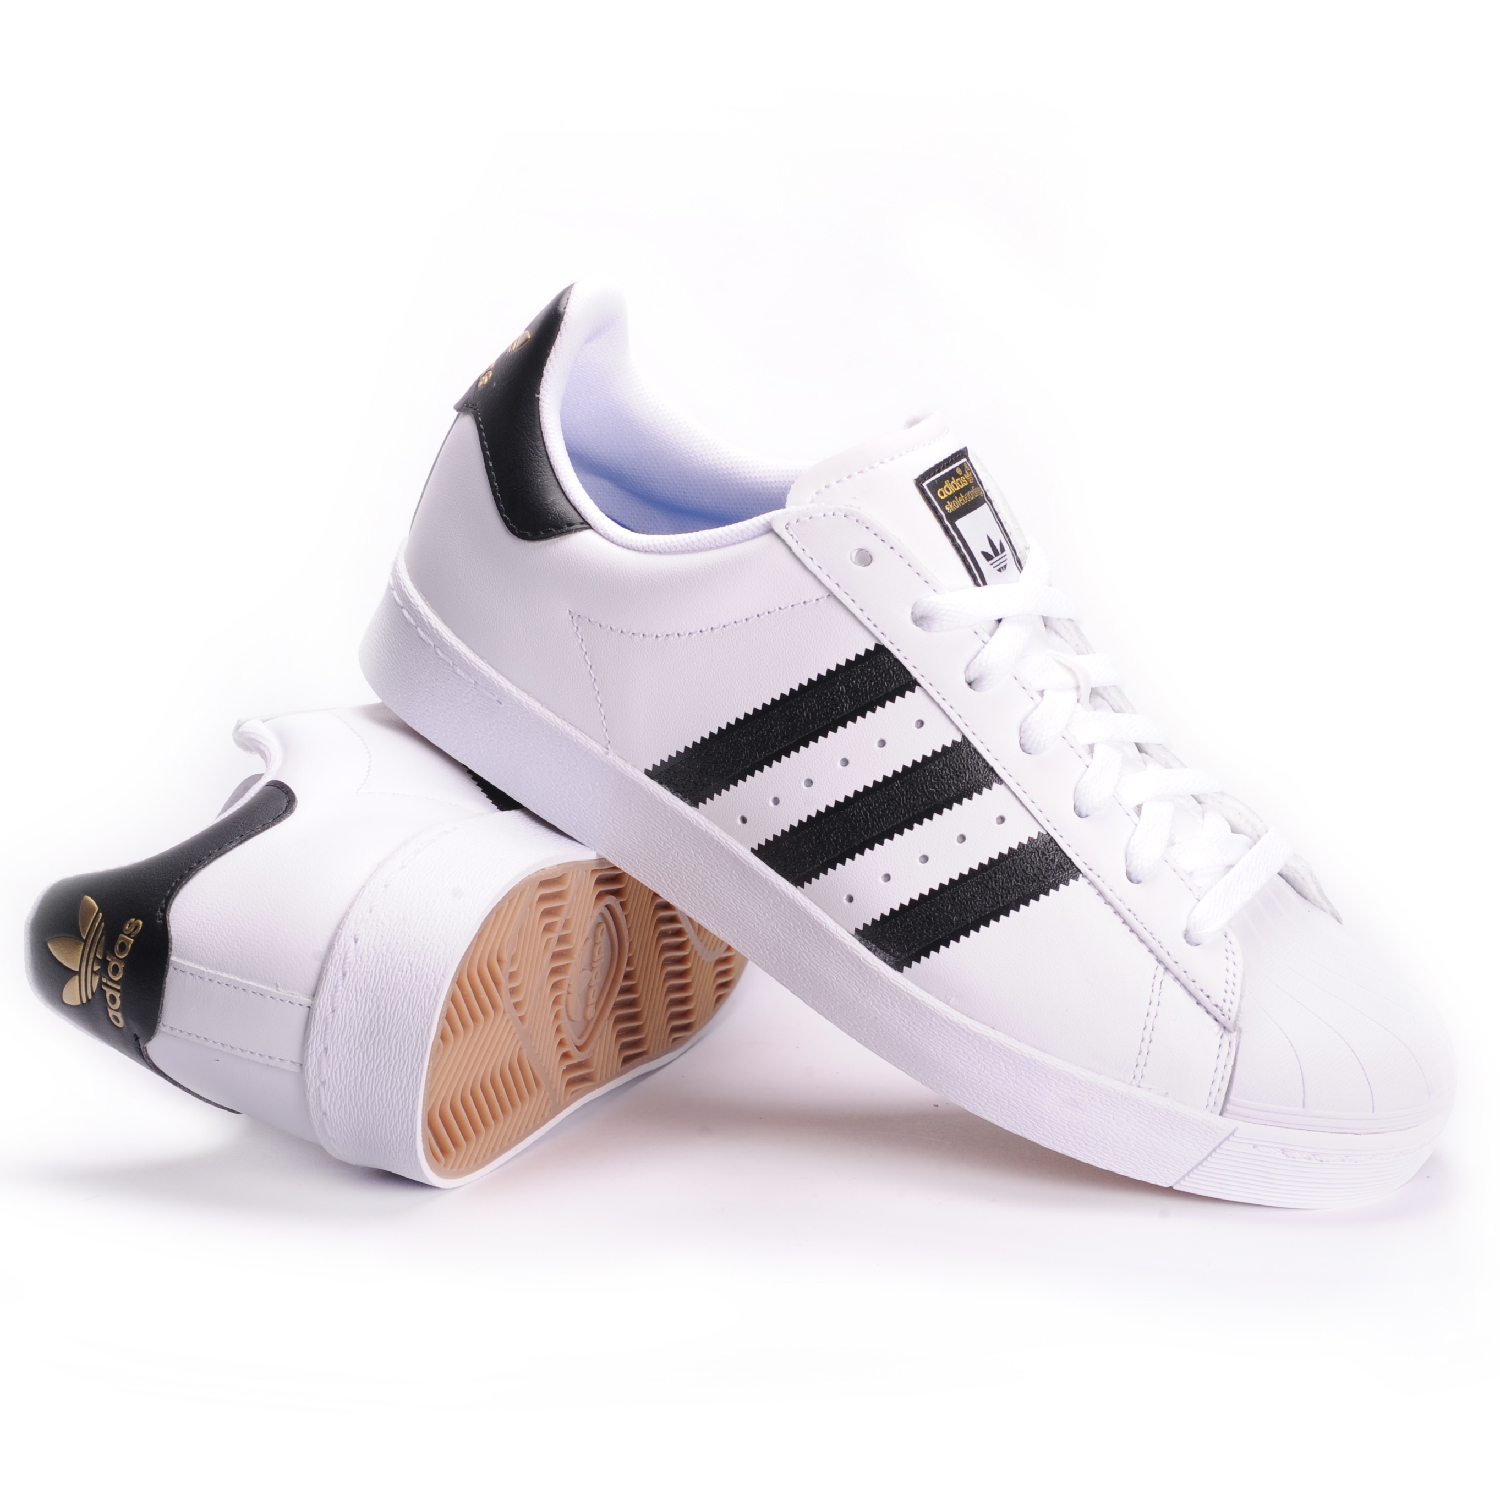 Adidas-Superstar-Vulc-ADV-White-Core-Black-White-